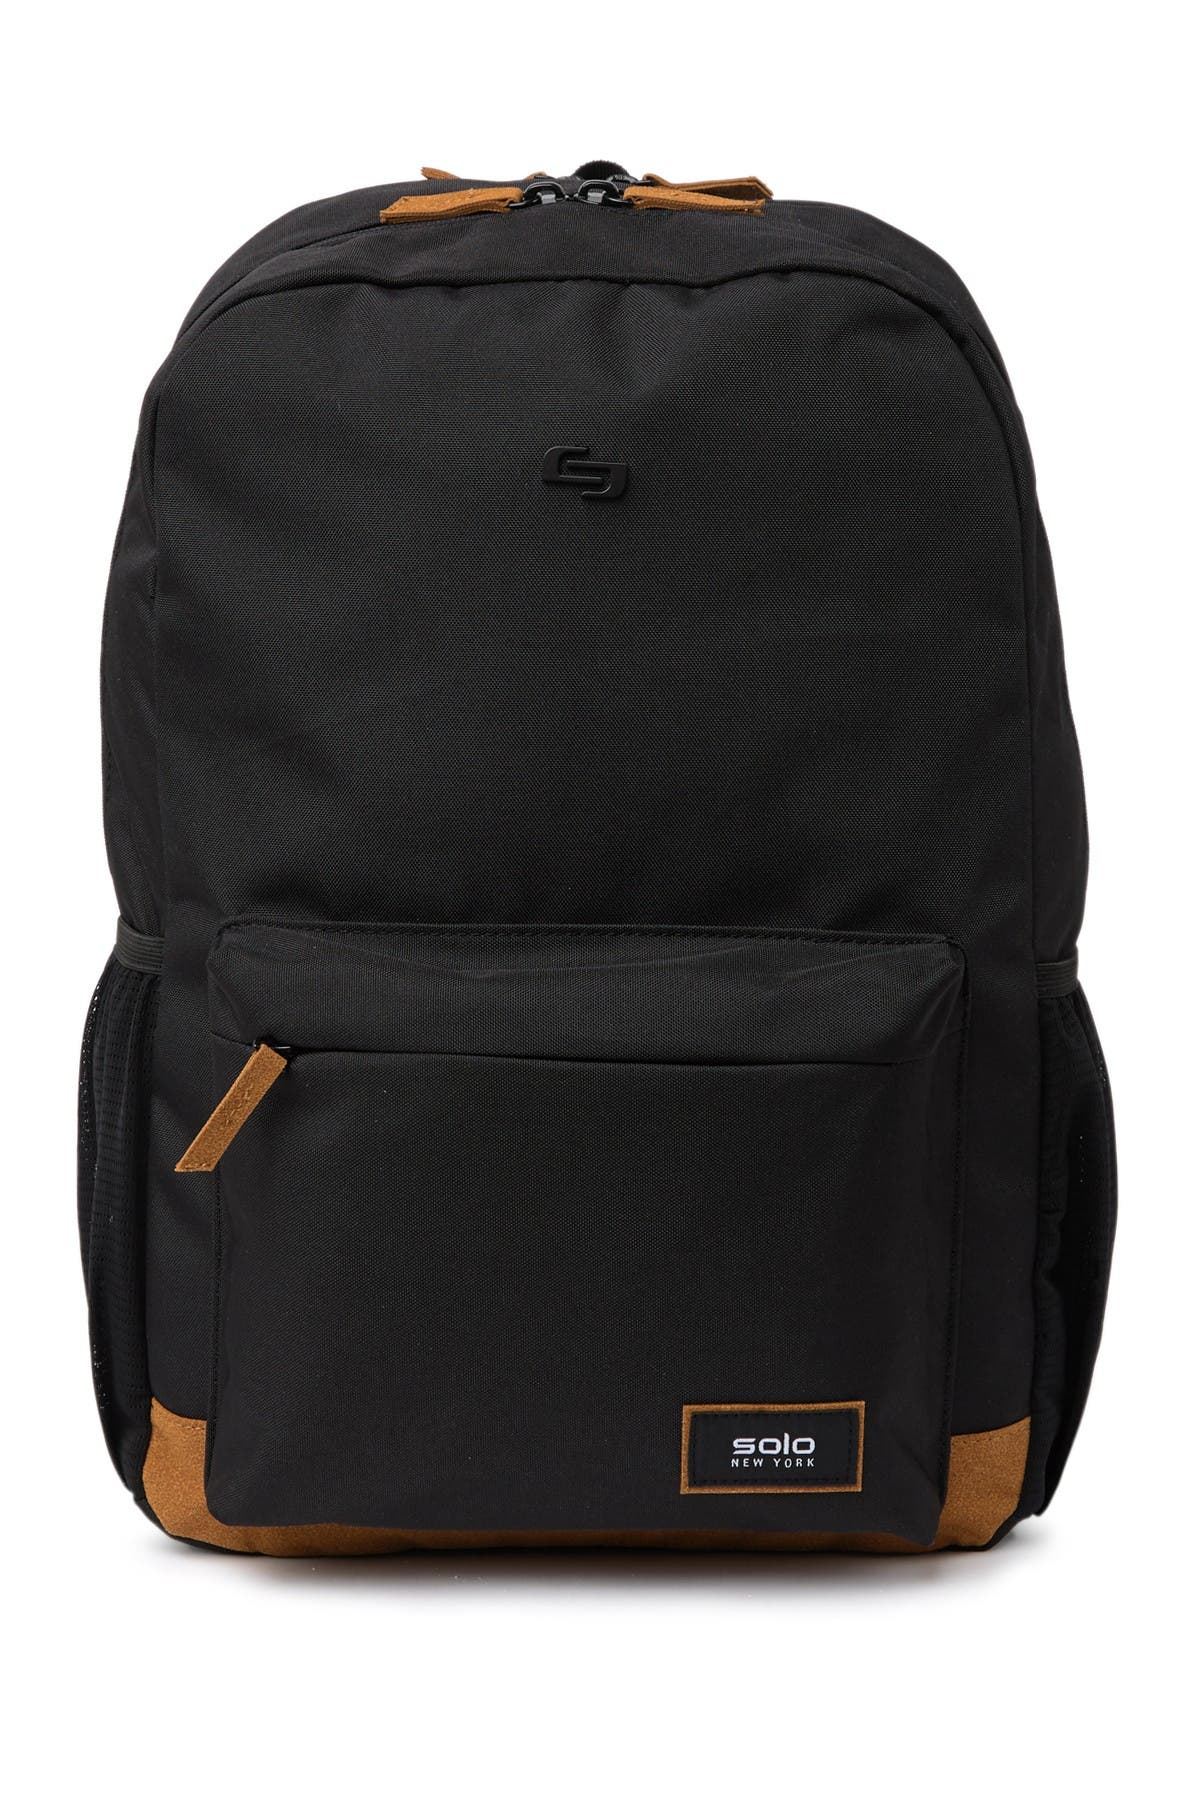 Image of SOLO NEW YORK Solo Bedford Backpack